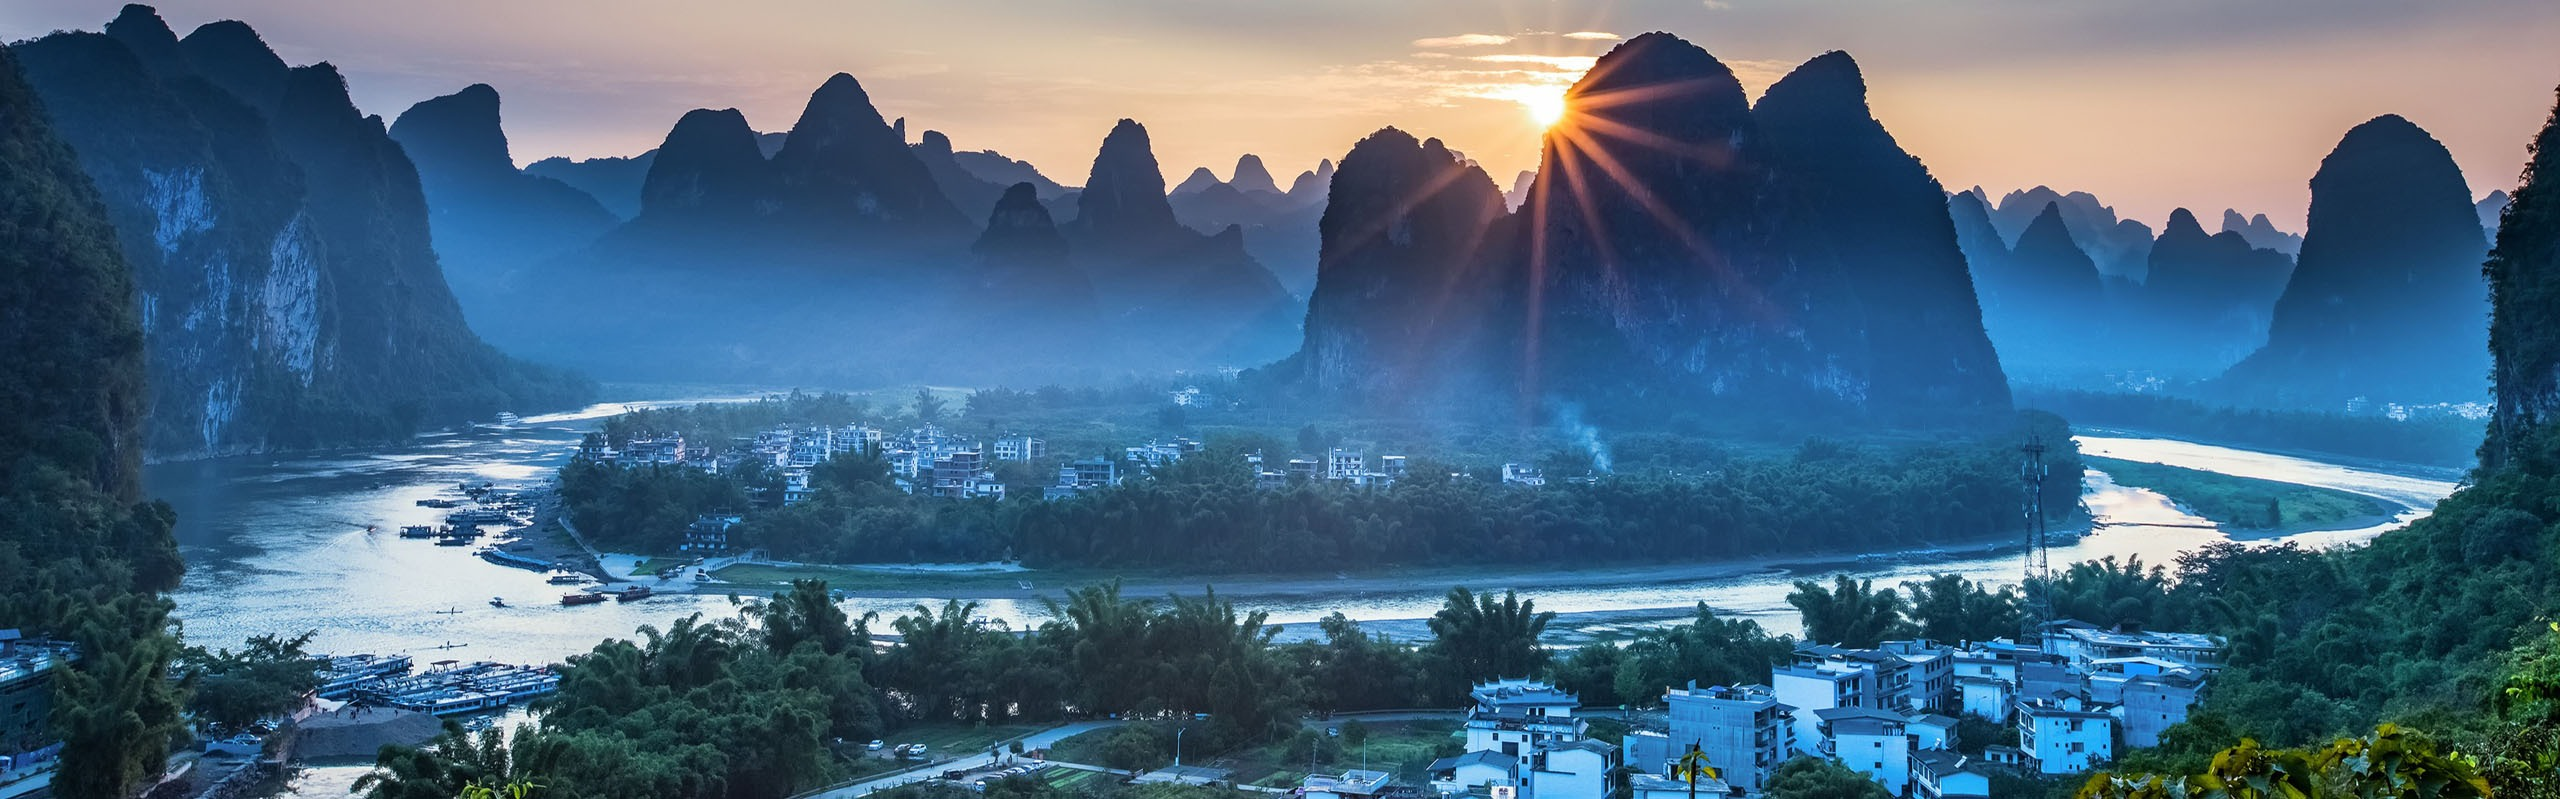 6 Days Guilin Photography Tour